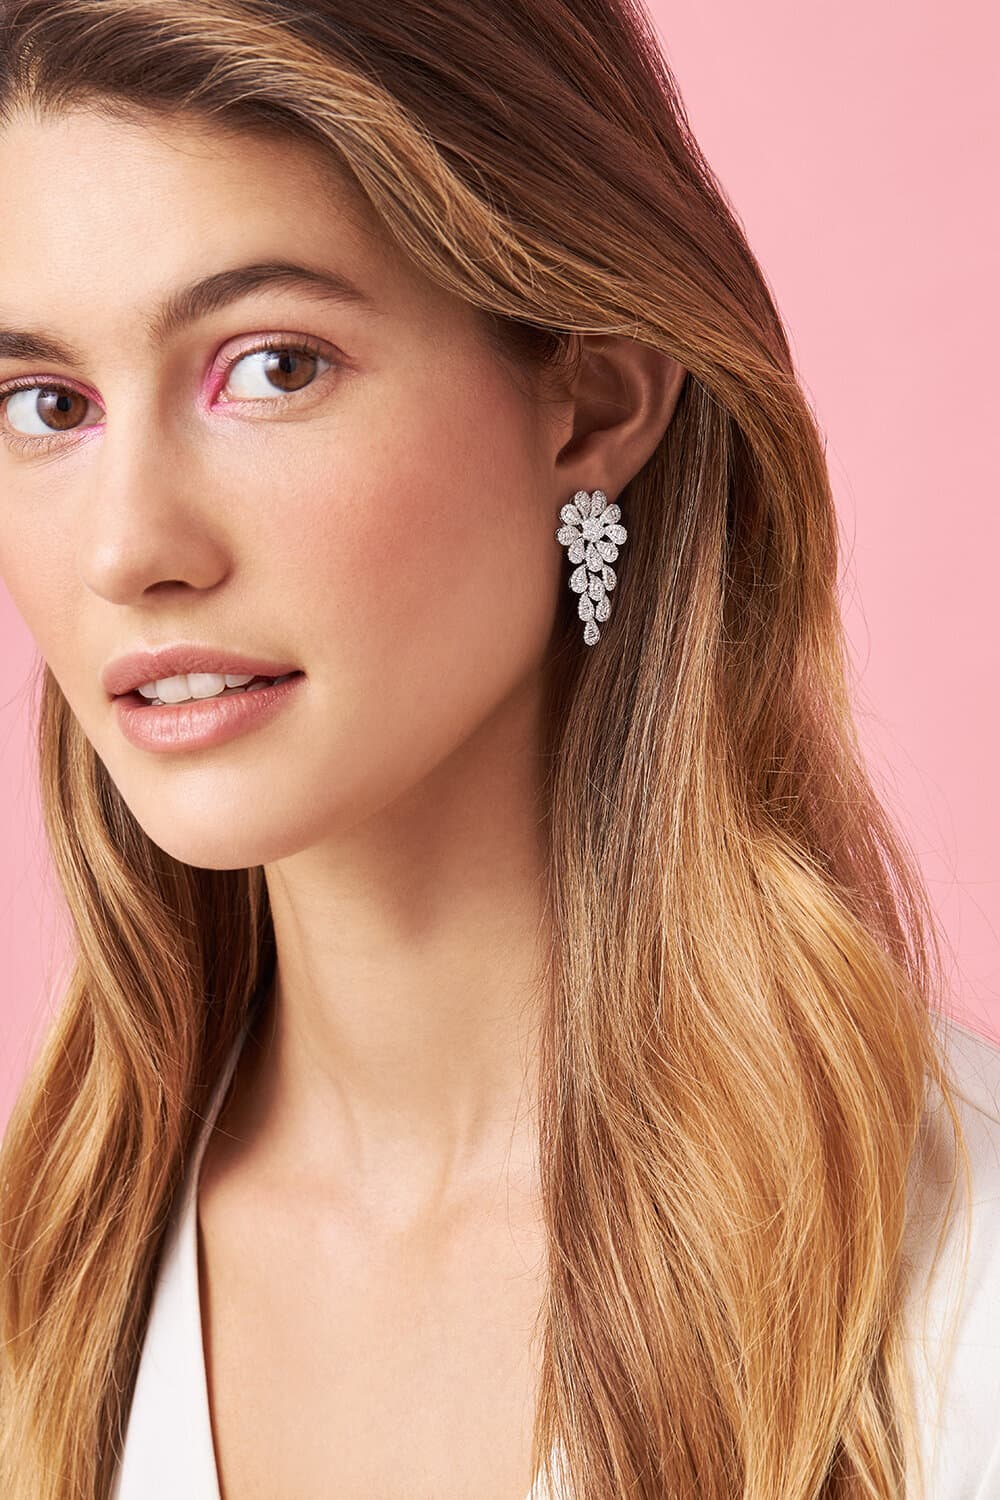 Effy Jewelry's Spring Campaign